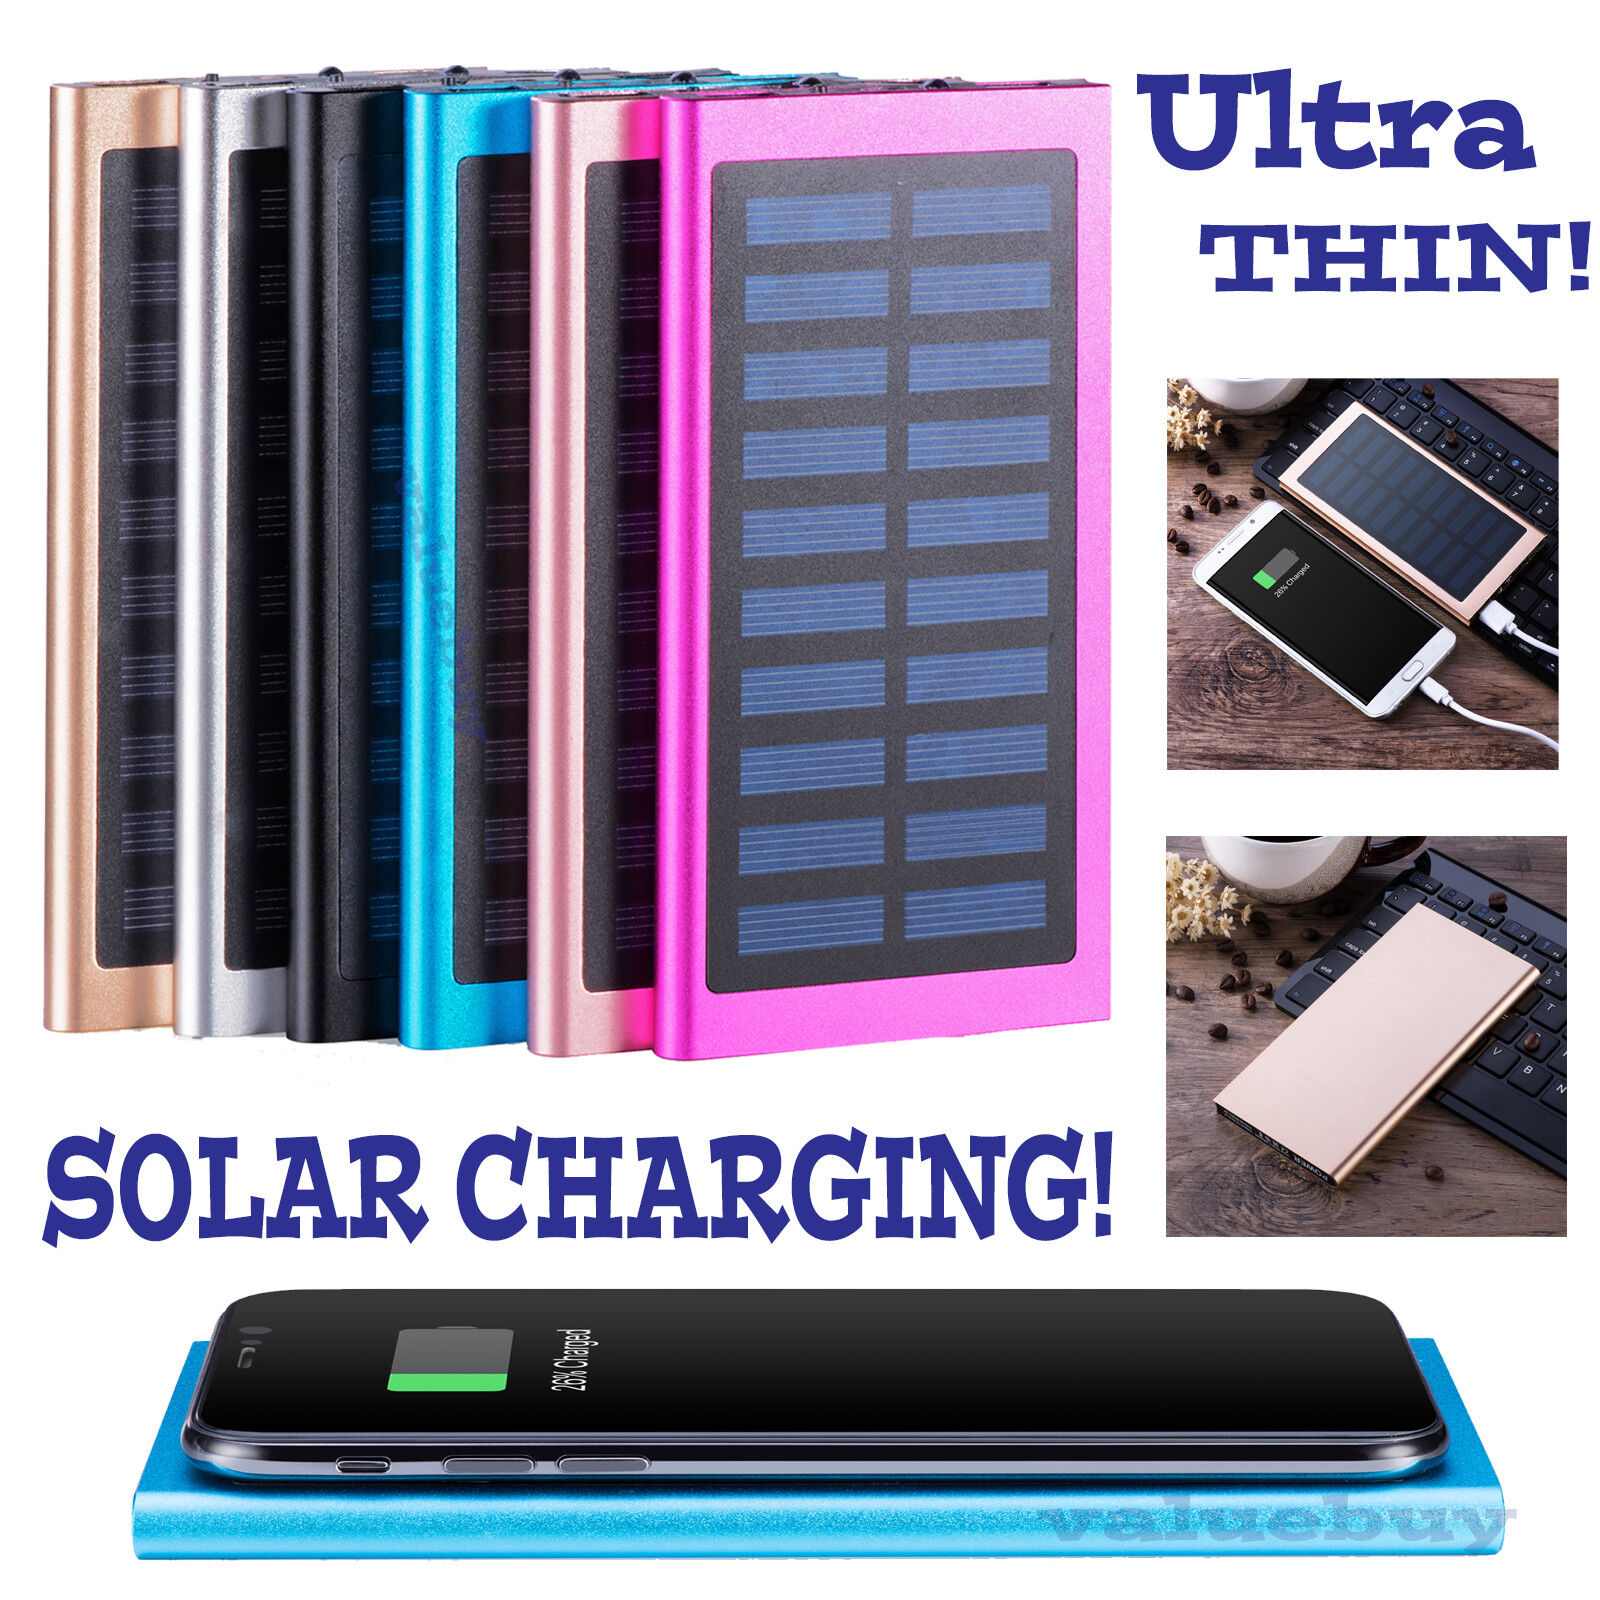 900000mAh Slim 2 USB Portable Battery Charger Solar Power Bank For Phone Cell Phone Accessories